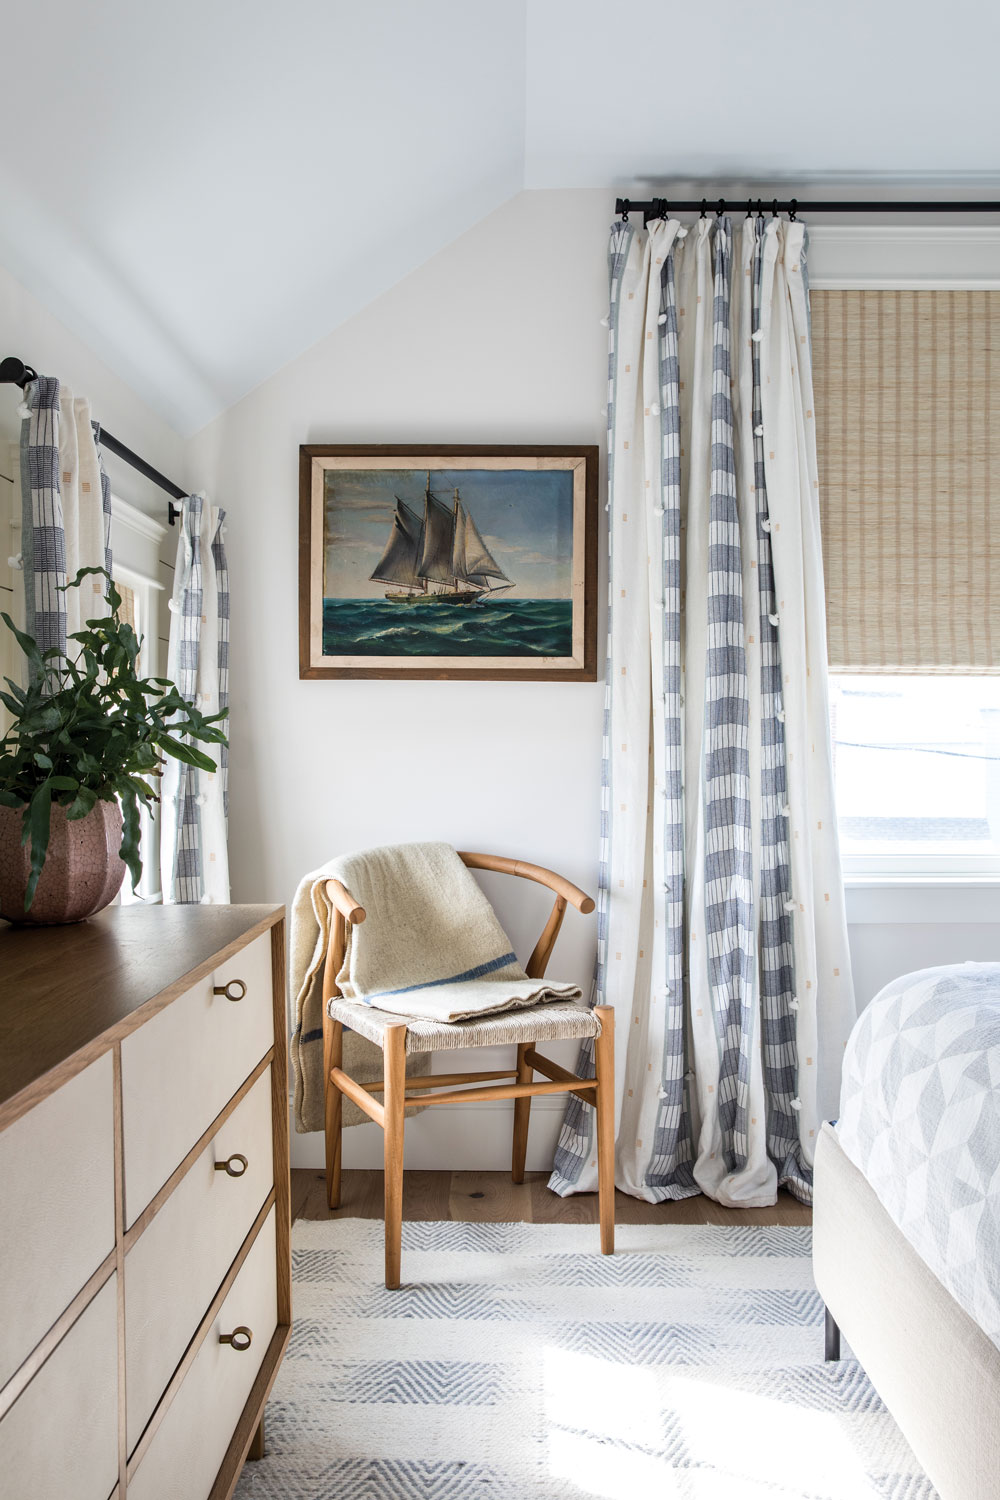 In the guest room, Yarmouth designer Nicola Manganello paired an antique ship's portrait from Massachusetts's Brimfield flea market with a Wishbone chair and billowy Anthropologie draperies.